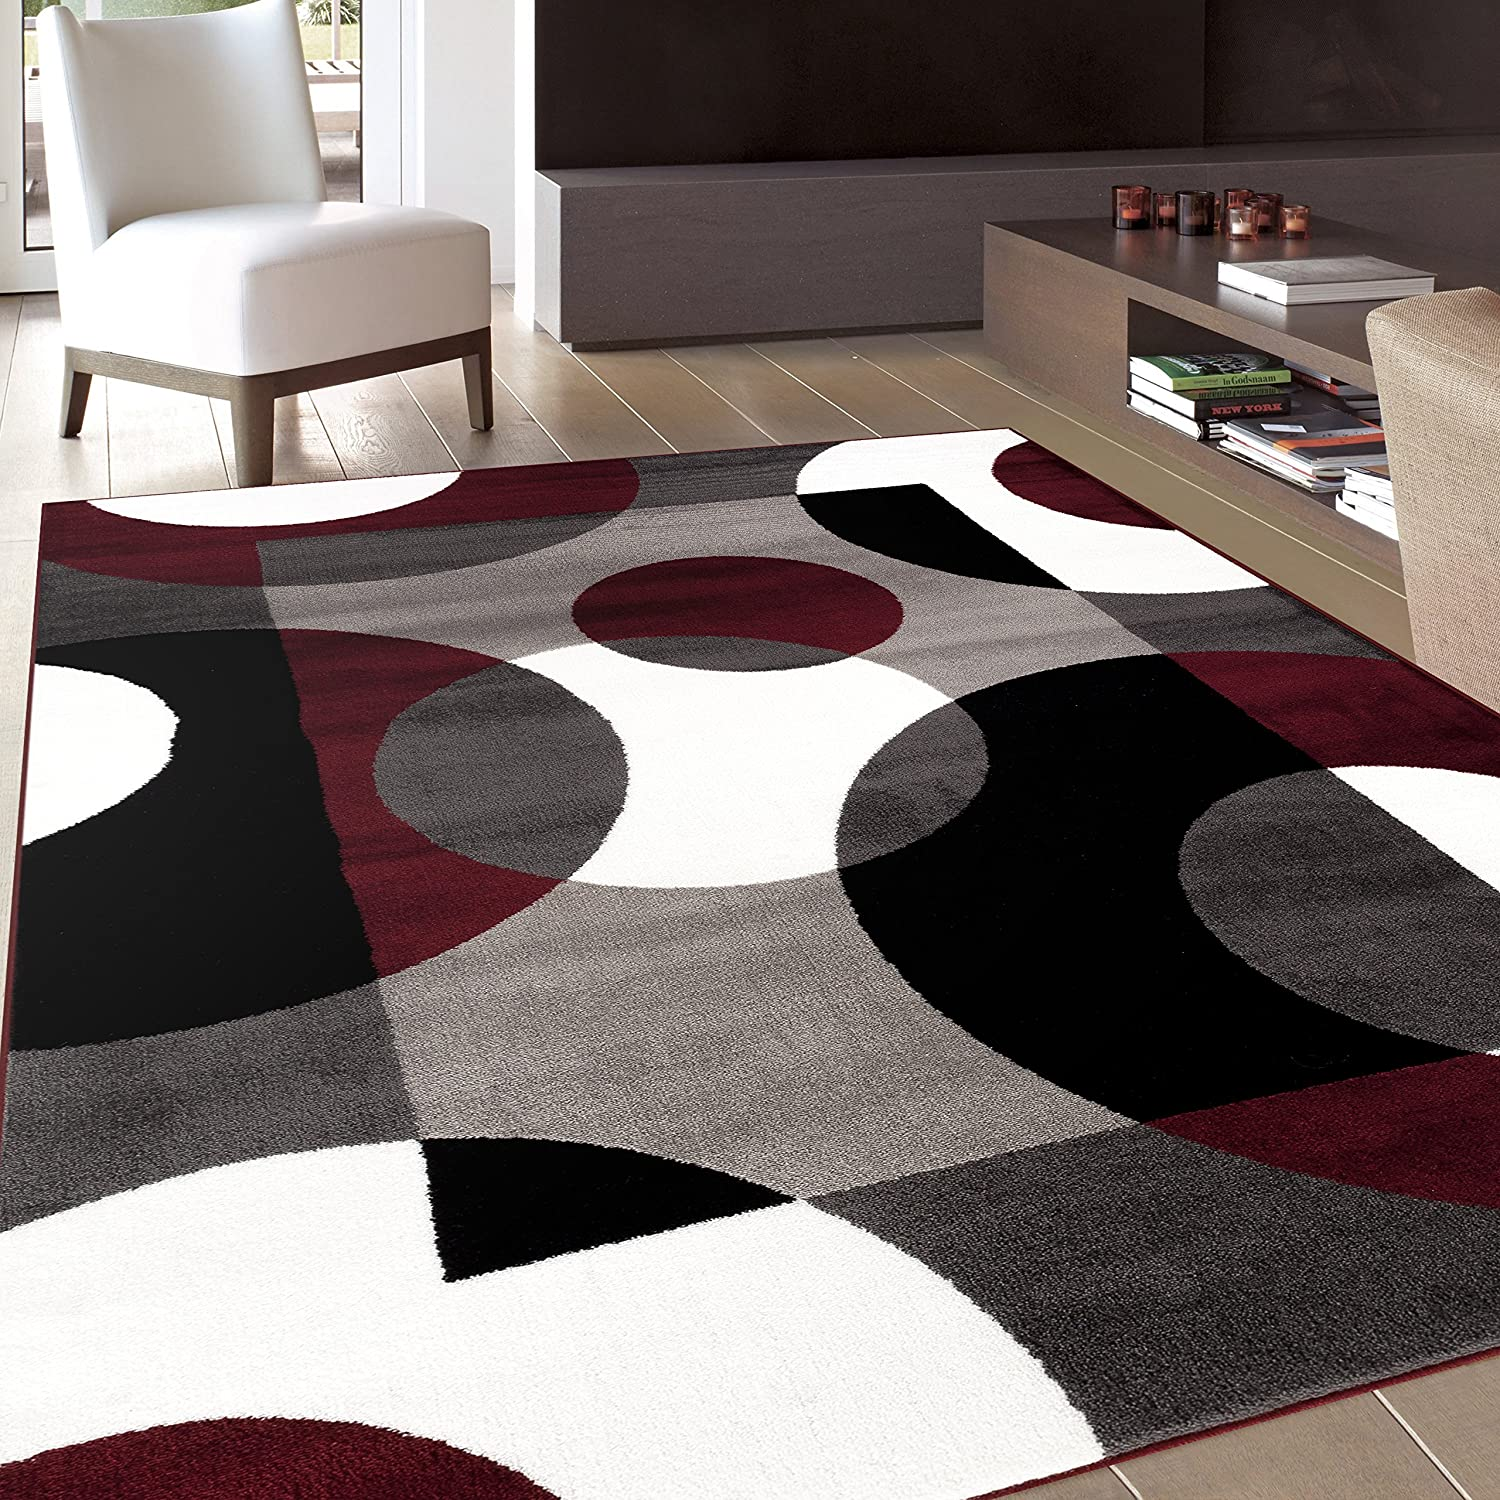 area rug designer carpet modern circles rug living room large burgundy